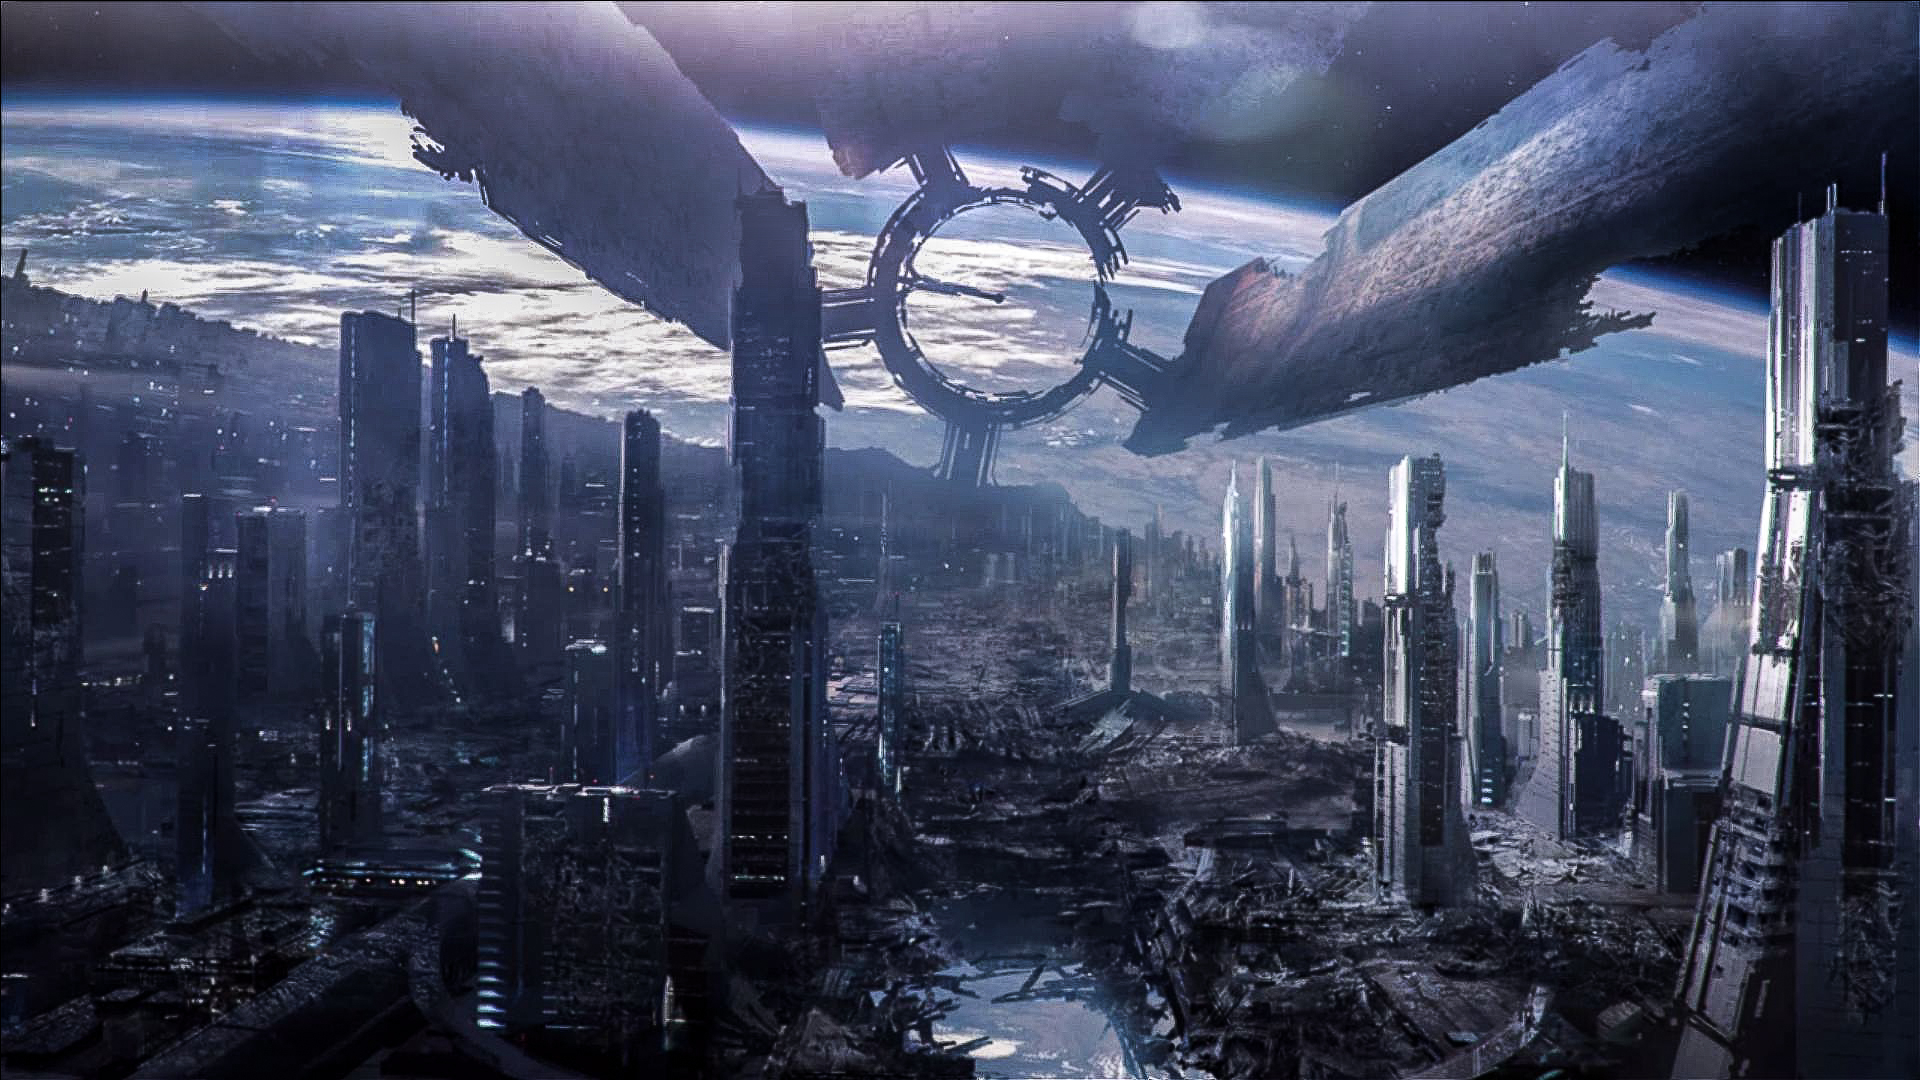 Mass effect 3 destroyed citadel by droot1986 on deviantart - Intire decrution ...